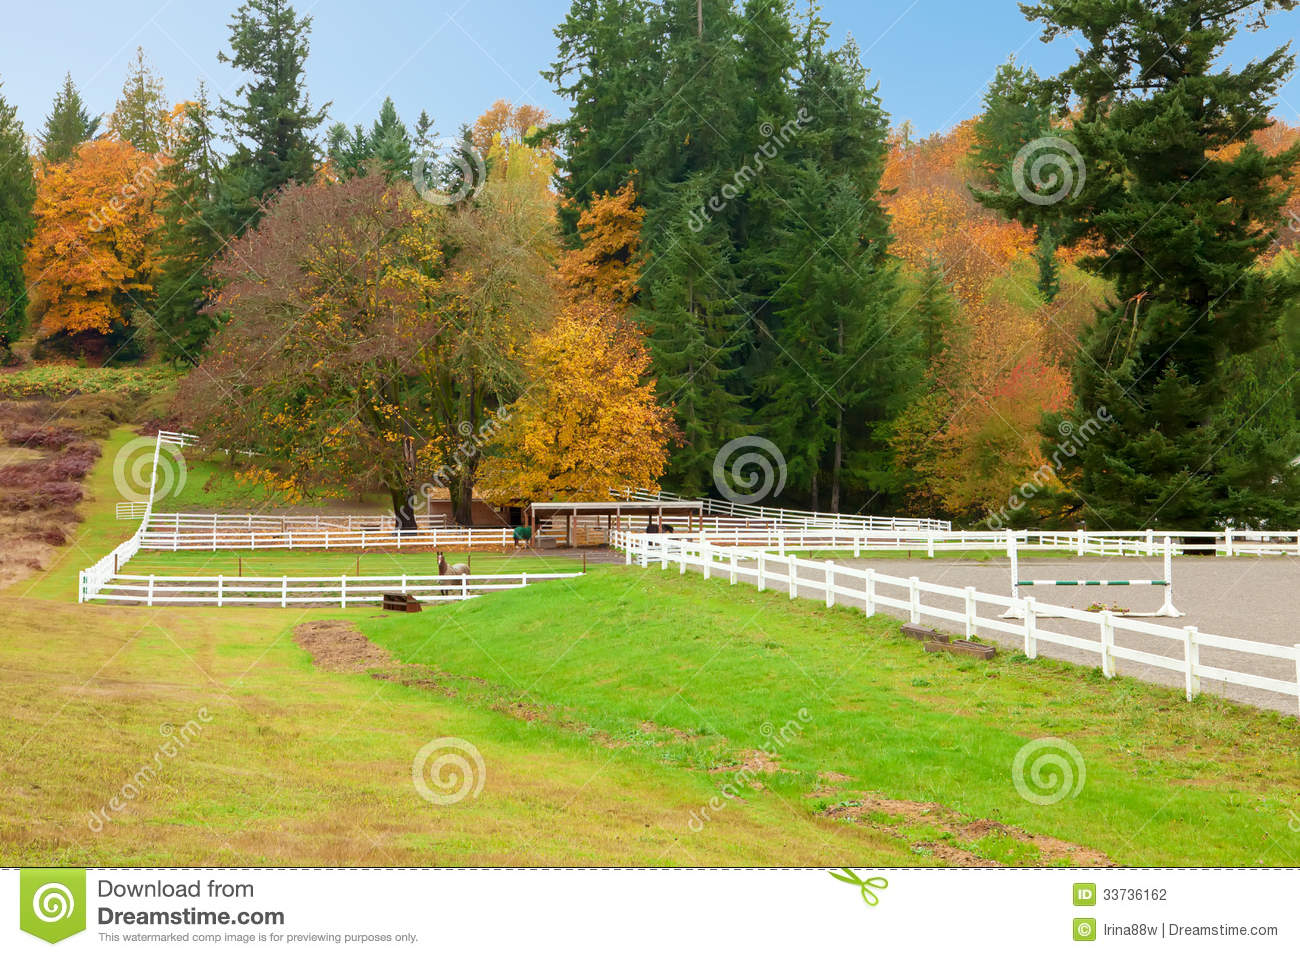 Horse farm with white fence and fall colorful leaves.